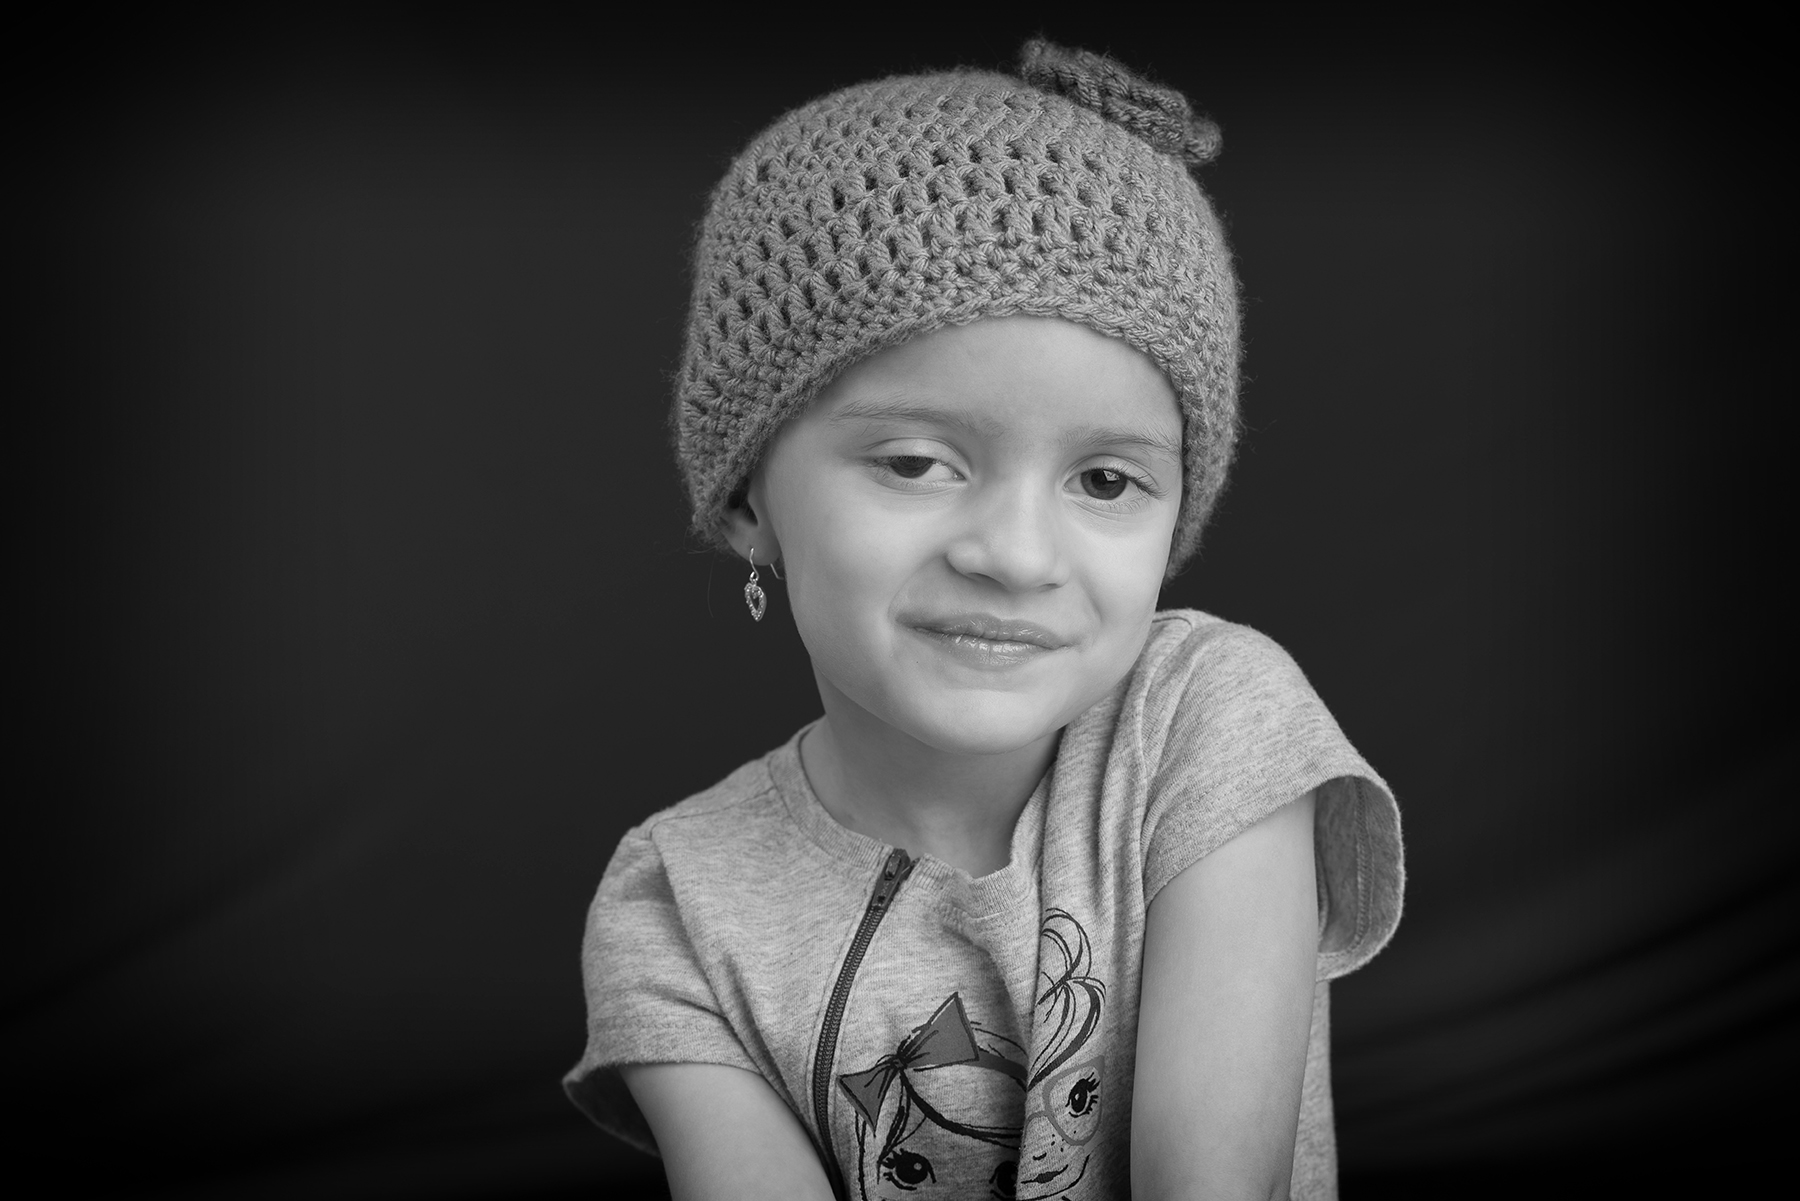 #portrait, #flashesofhope, #children, #blackandwhite